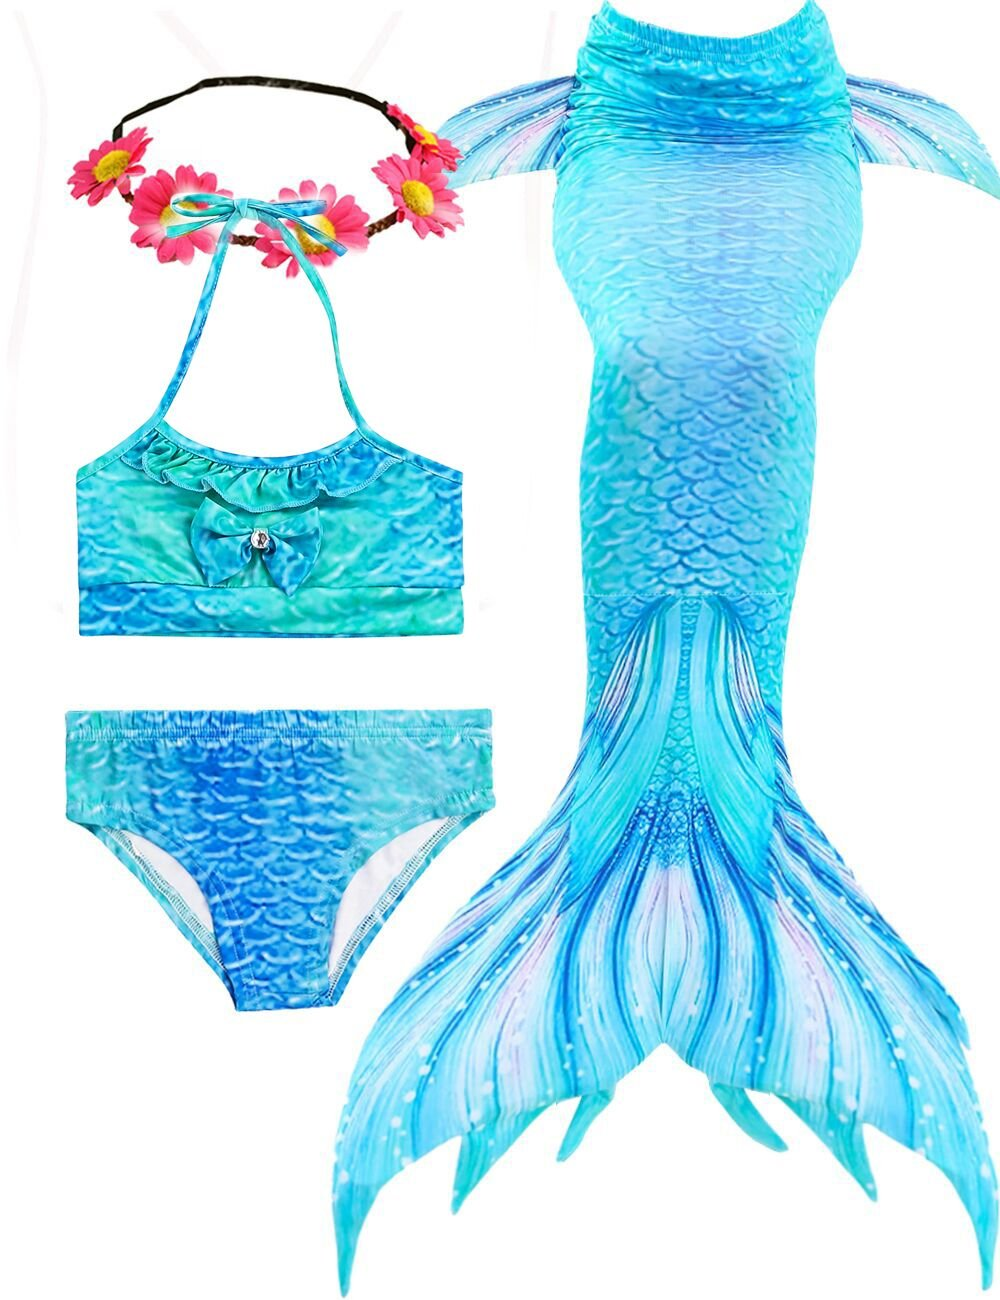 AMENON Mermaid Tails for Swimming Support Monofin Girls Bikini Swimsuits for Pool